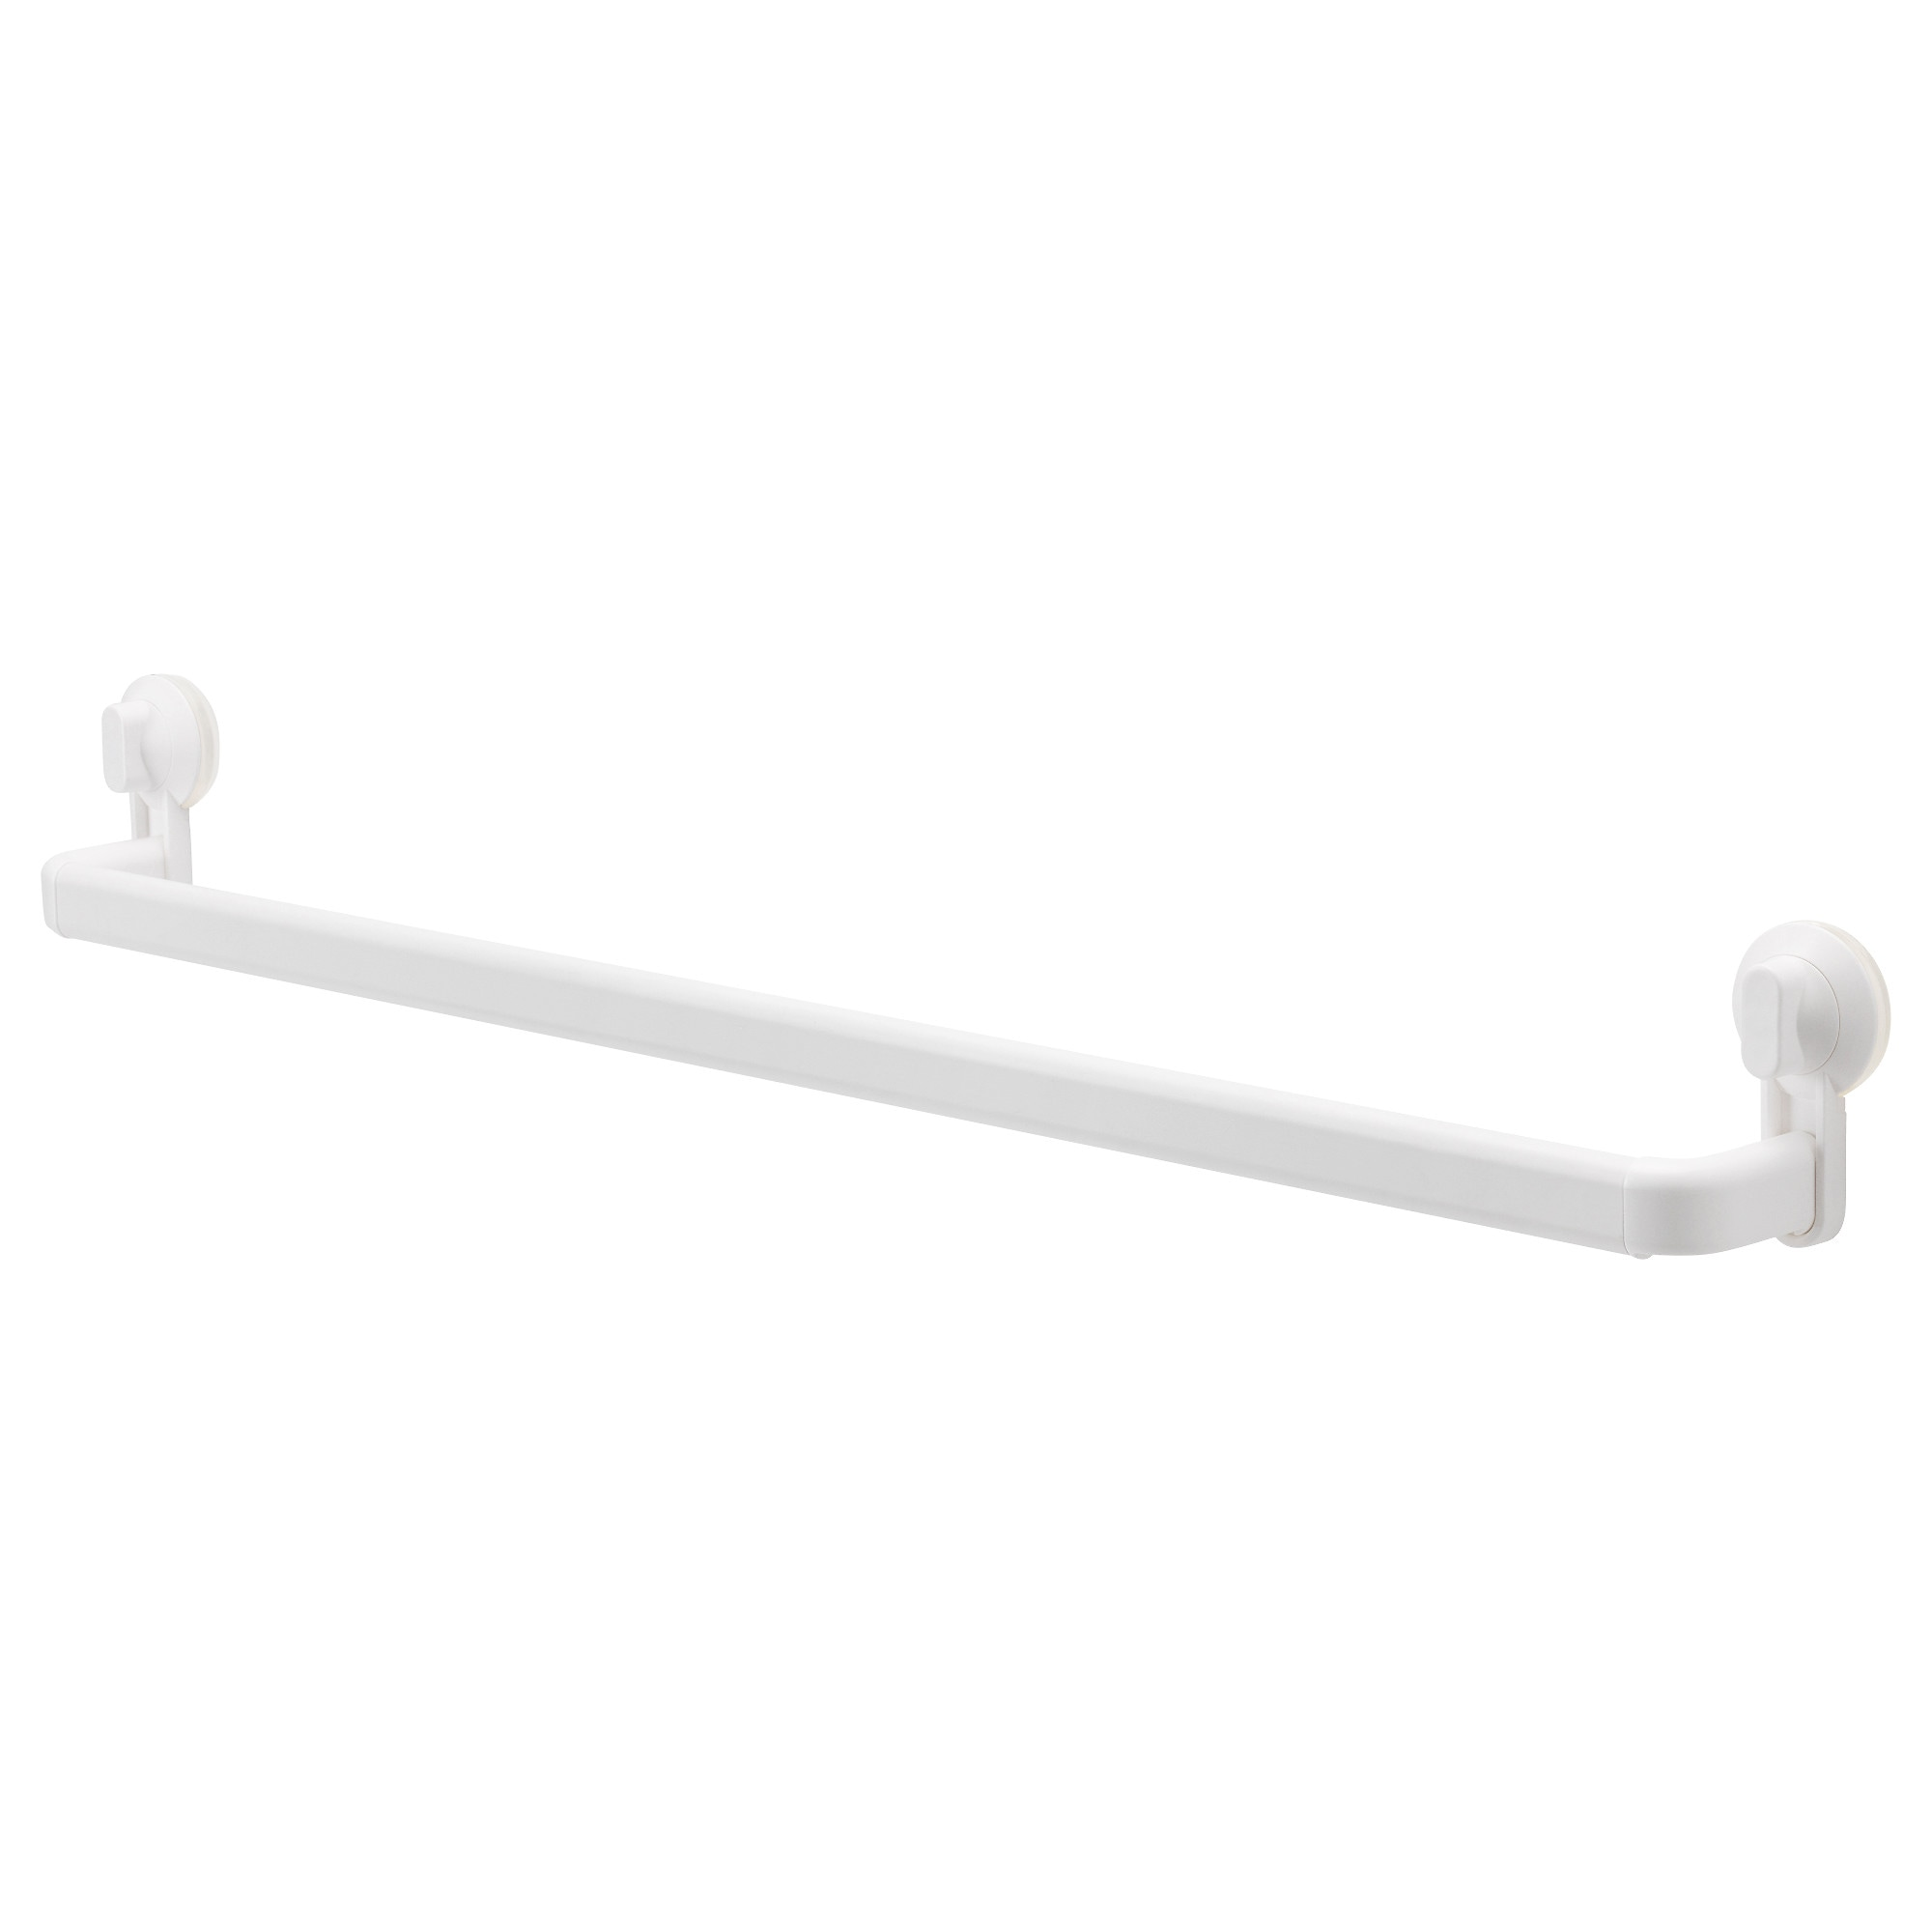 stugvik towel rack with suction cup white width 34 min width - Bathroom Accessories Towel Rail